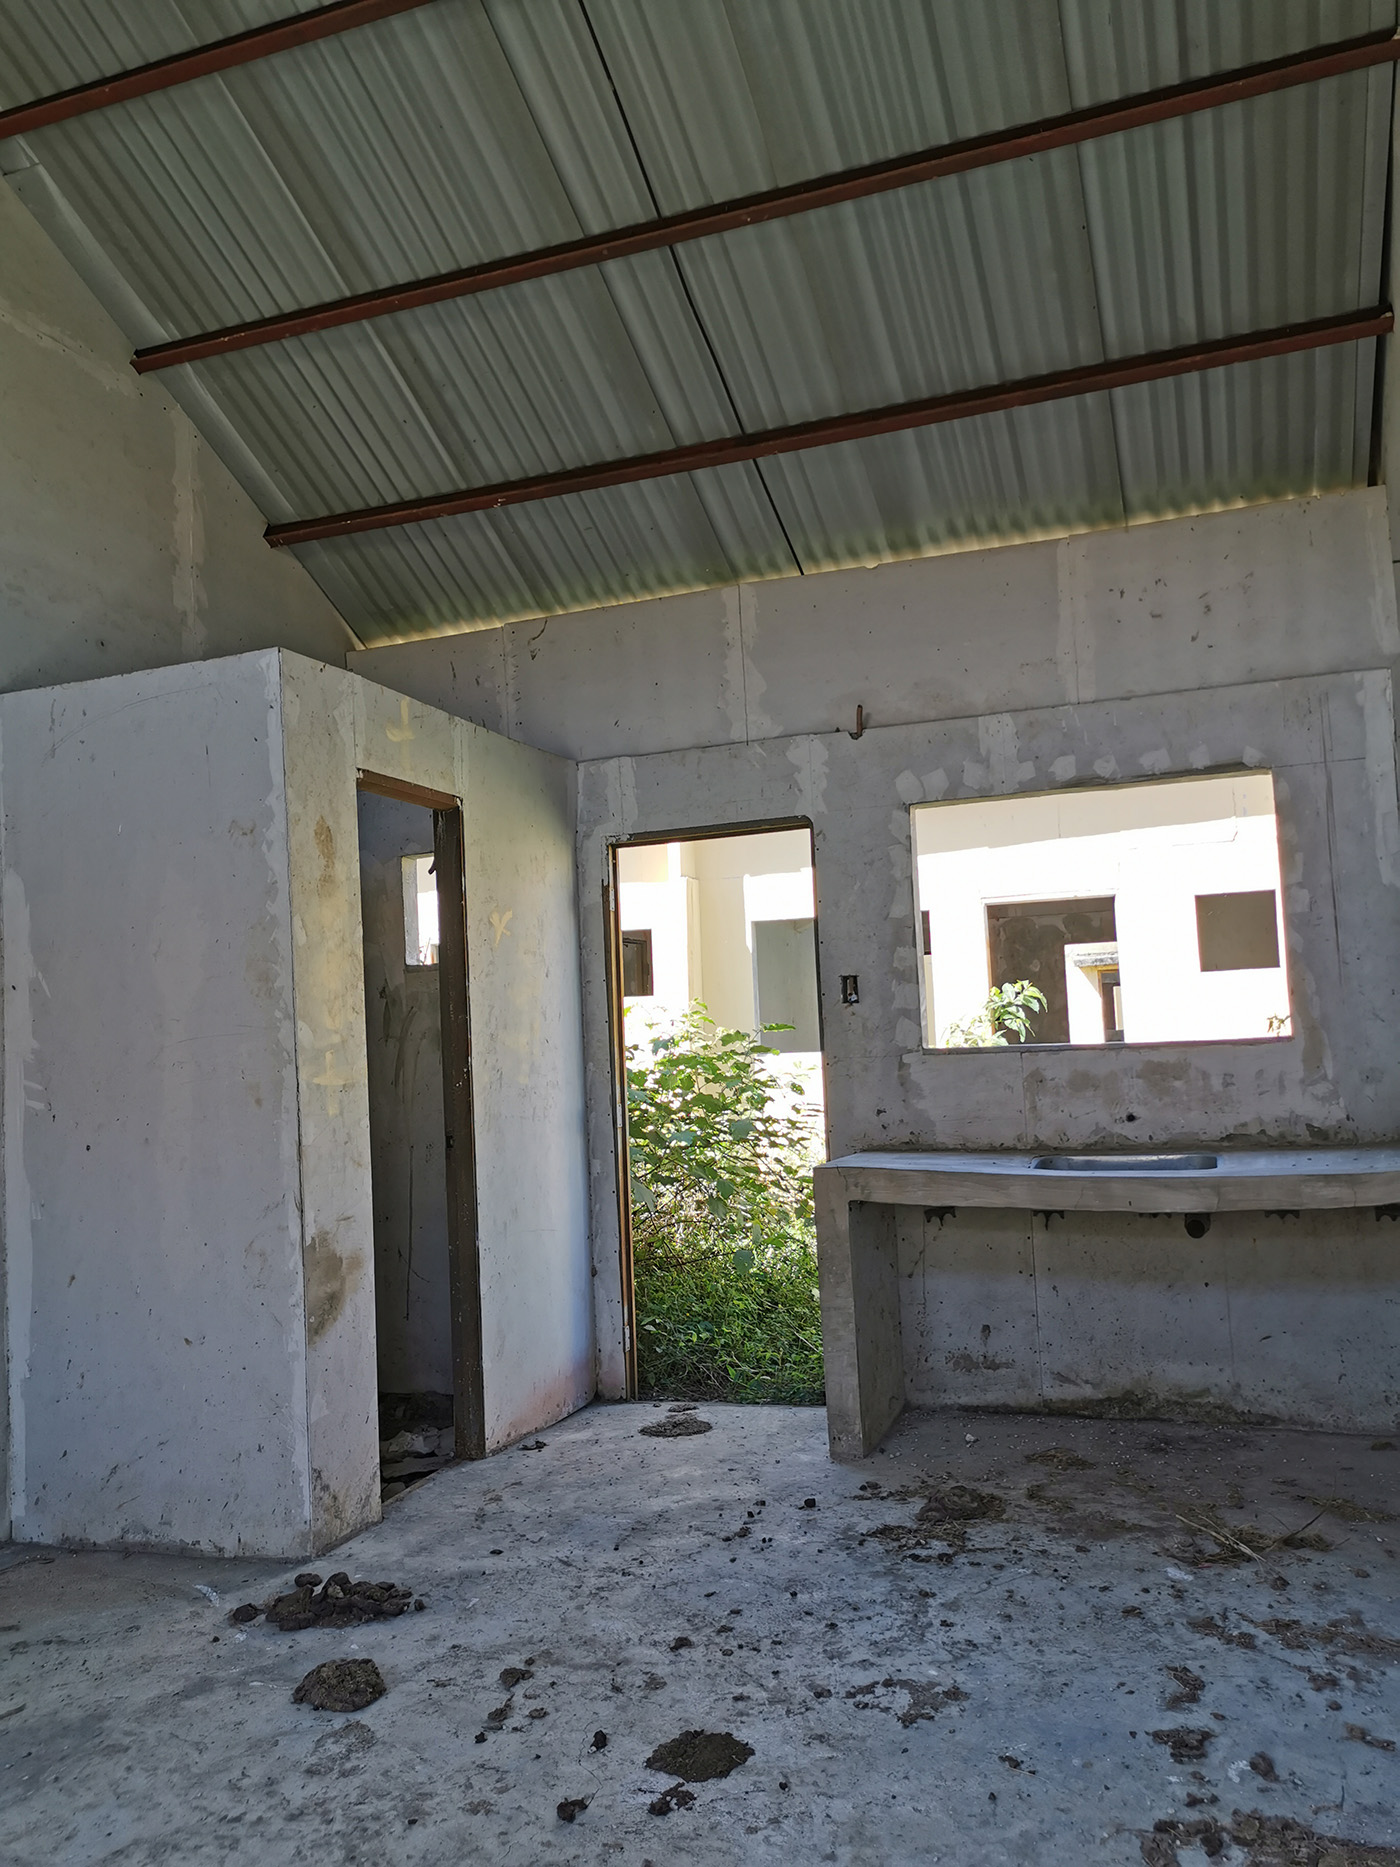 INTERIOR. All units have a partition for the bathroom and a kitchen sink. Photo by Tina Ganzon-Ozaeta/Rappler